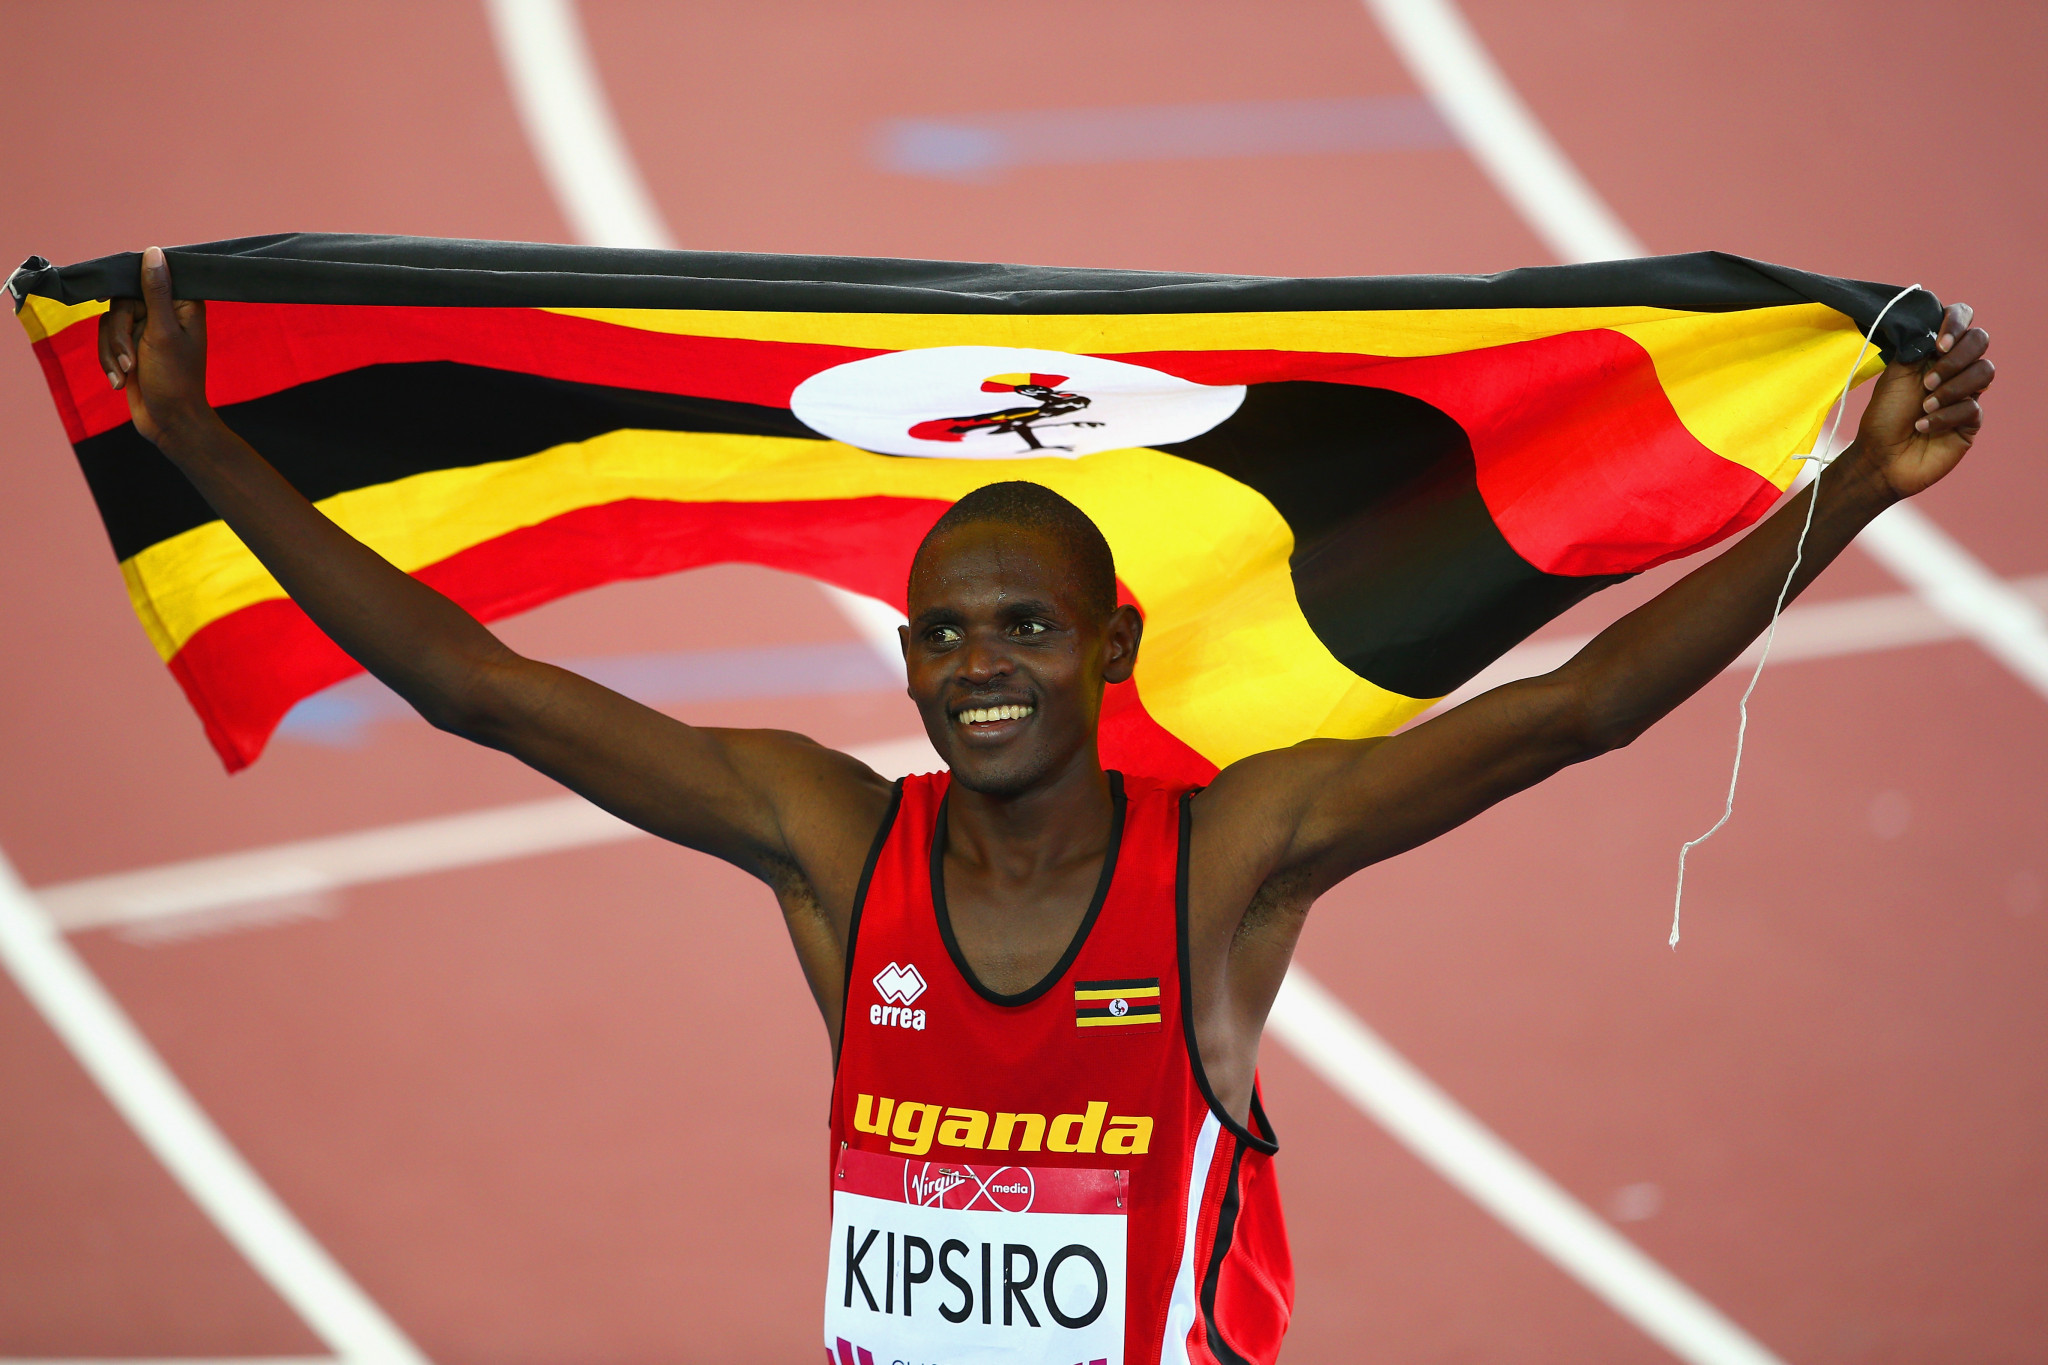 Moses Kipsiro has been dropped from Uganda's athletics team ©Getty Images